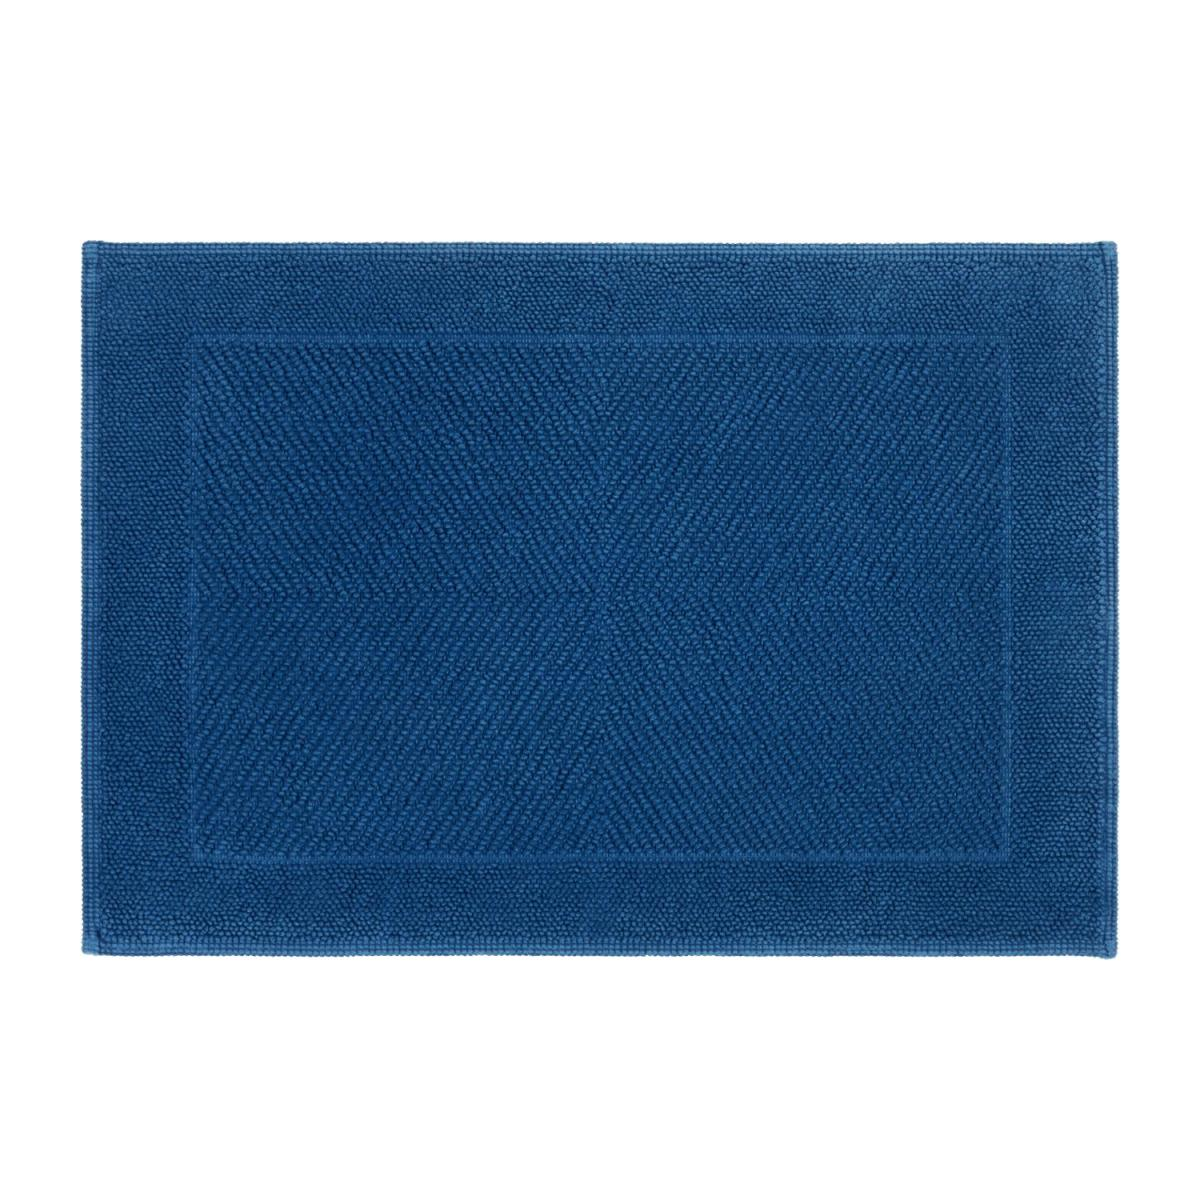 Blue bath mat n°1